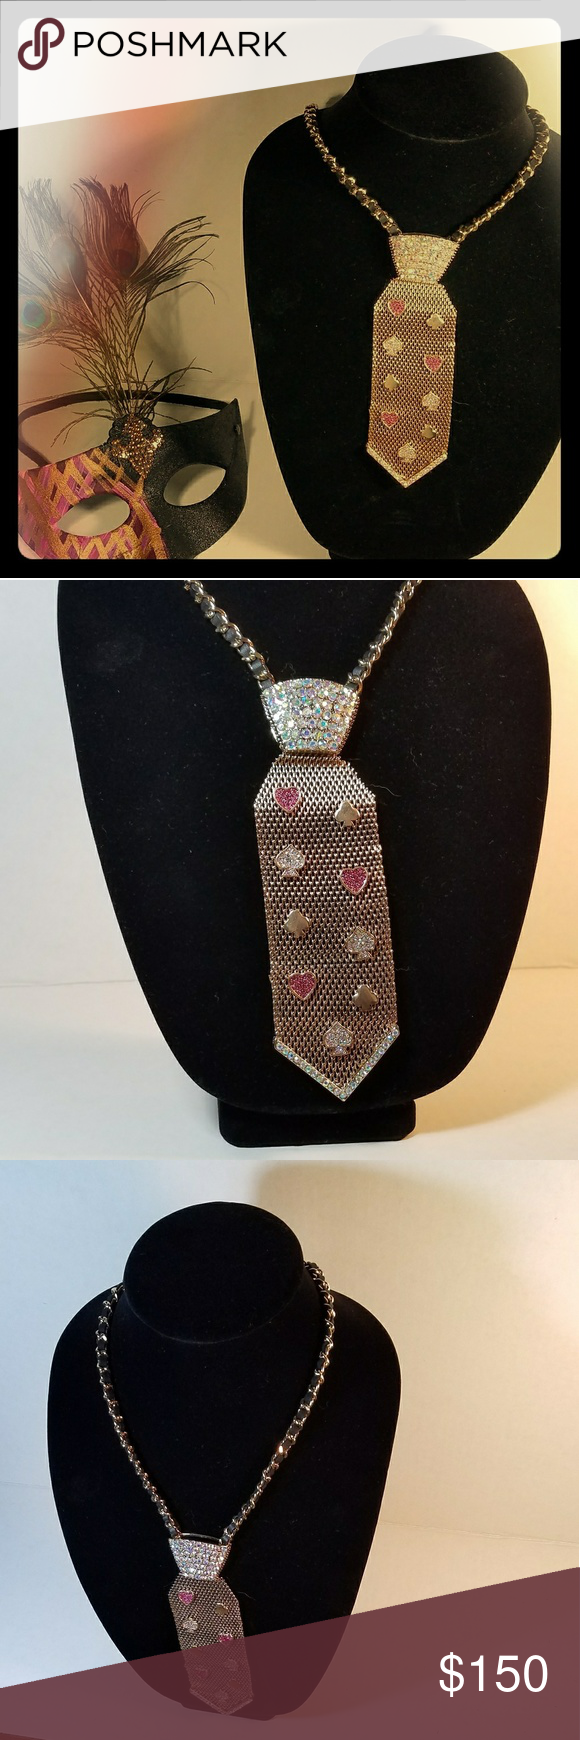 Betsey Johnson Tie Necklace NWT~ trendy tie necklace ready to spice up your outfit! Betsey Johnson Accessories